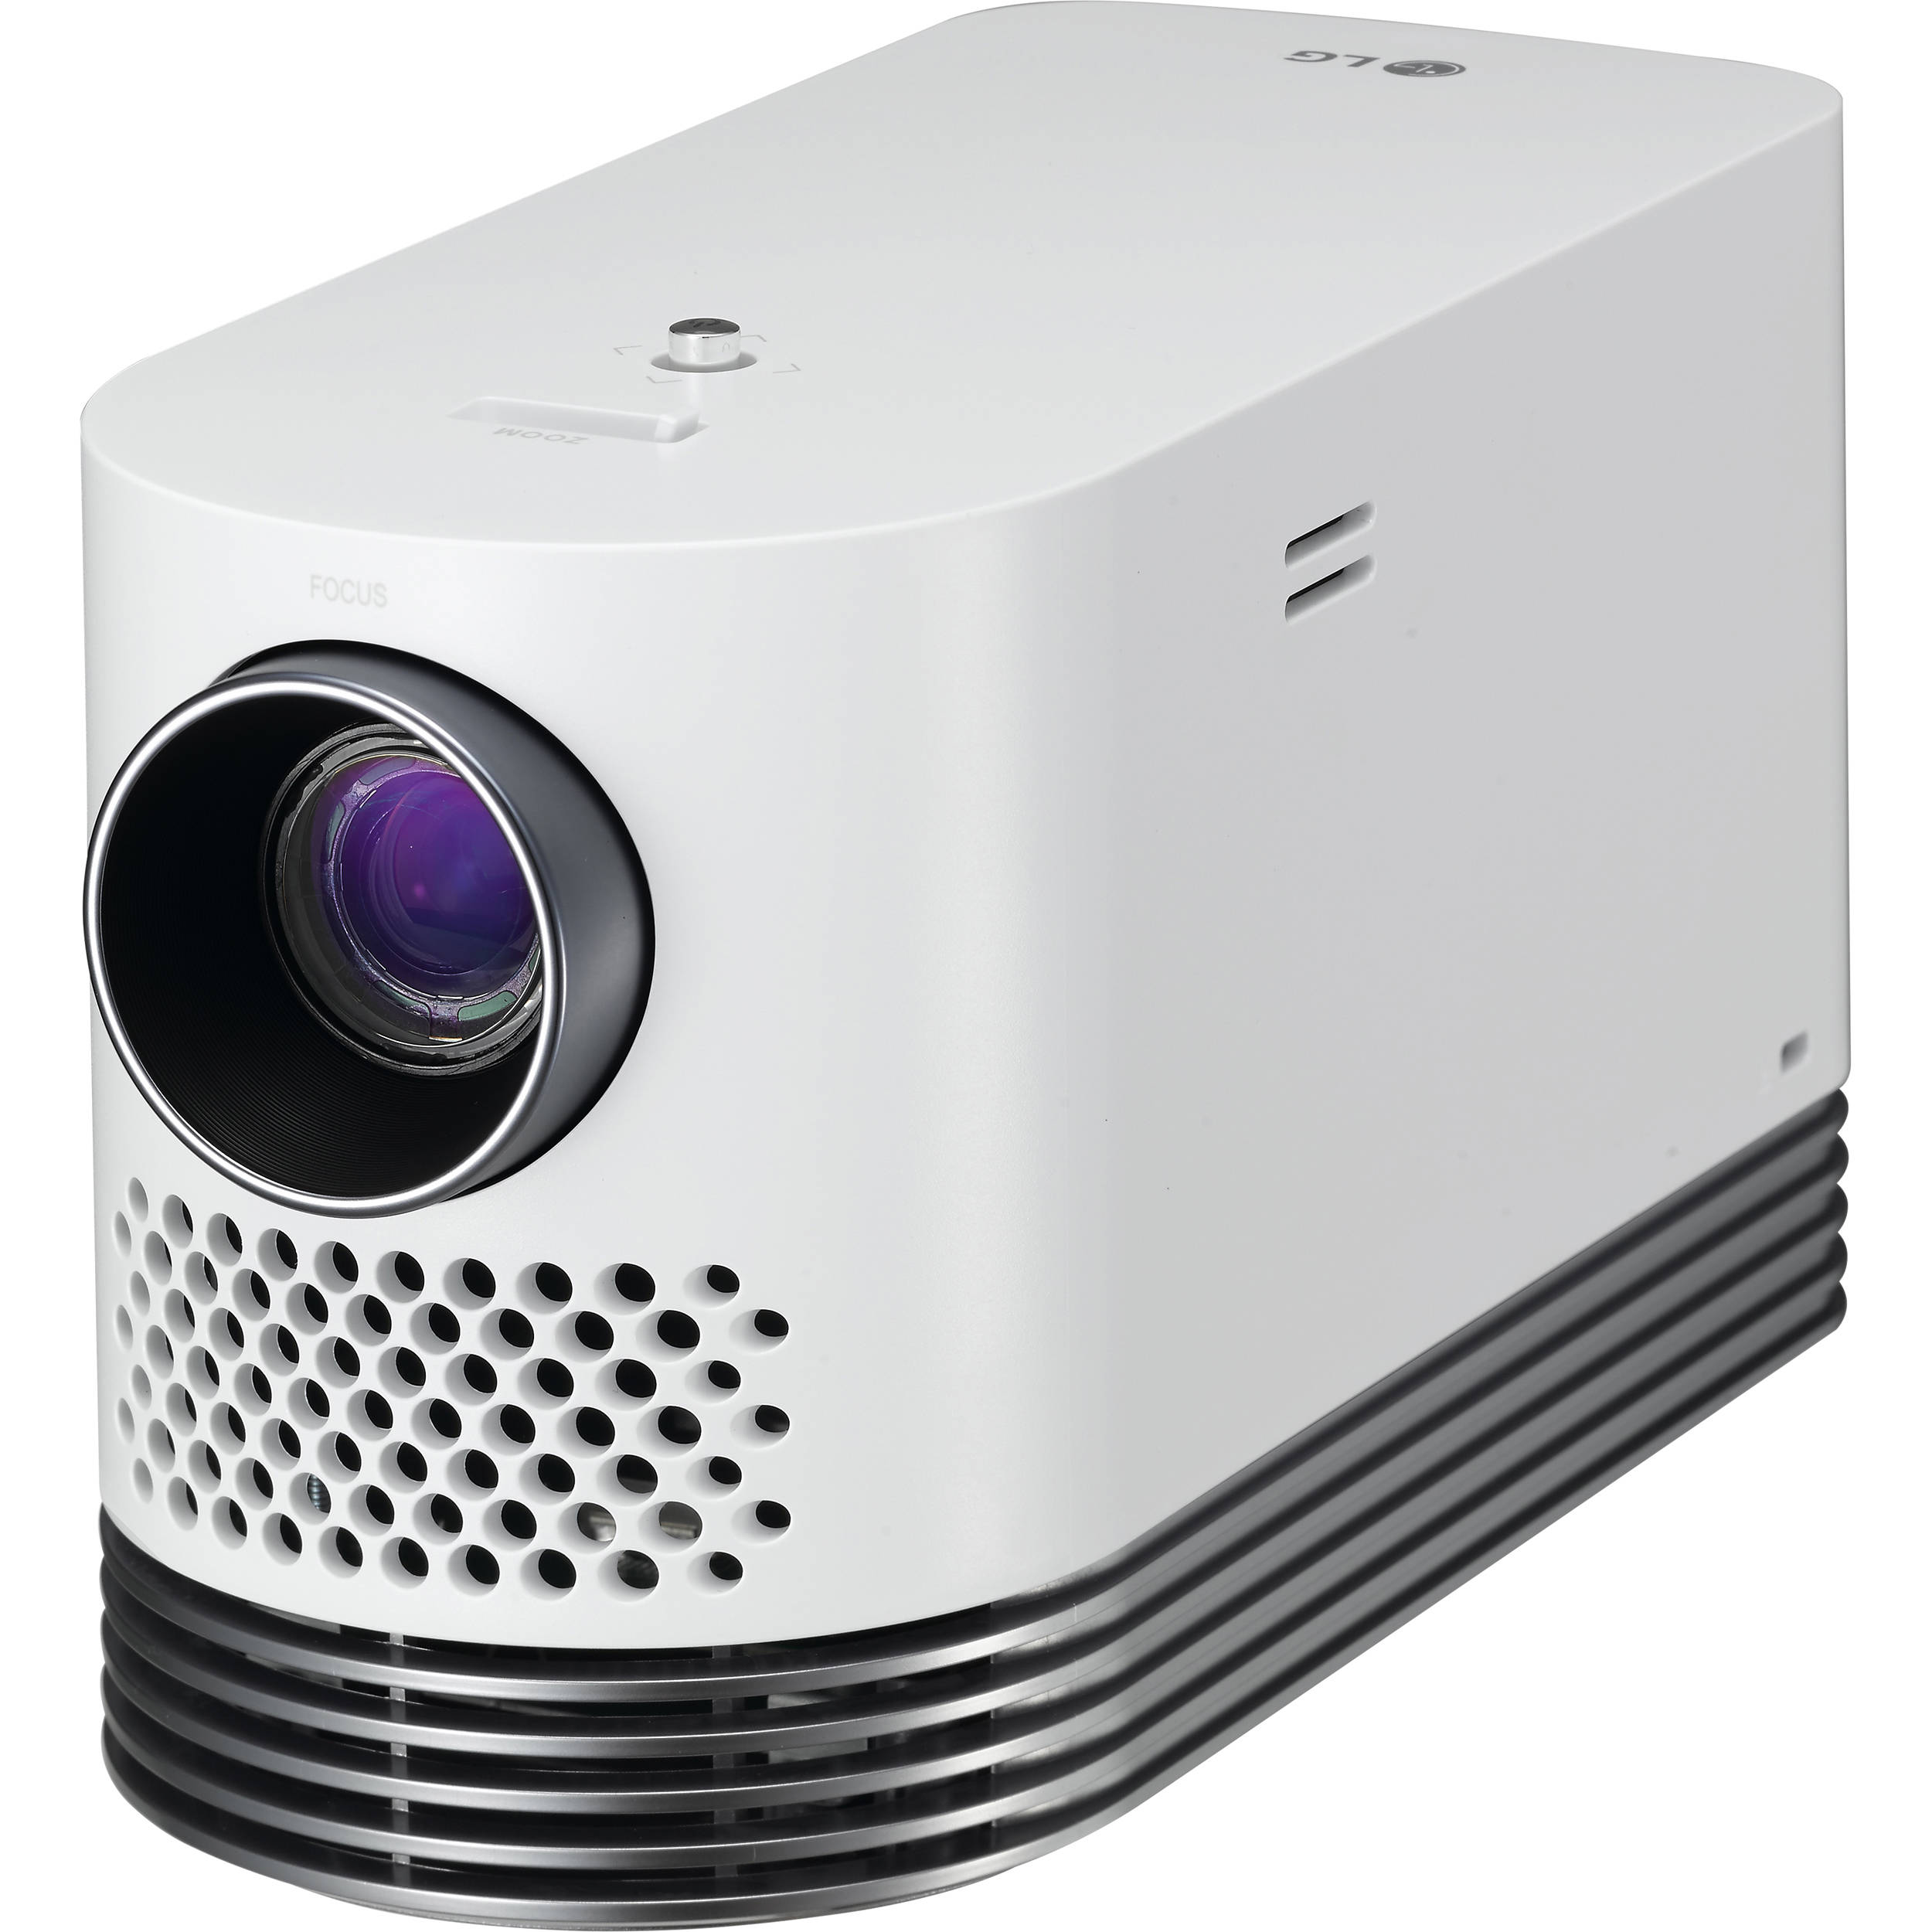 LG HF80JA Full HD DLP Home Theater Projector HF80JA B&H Photo